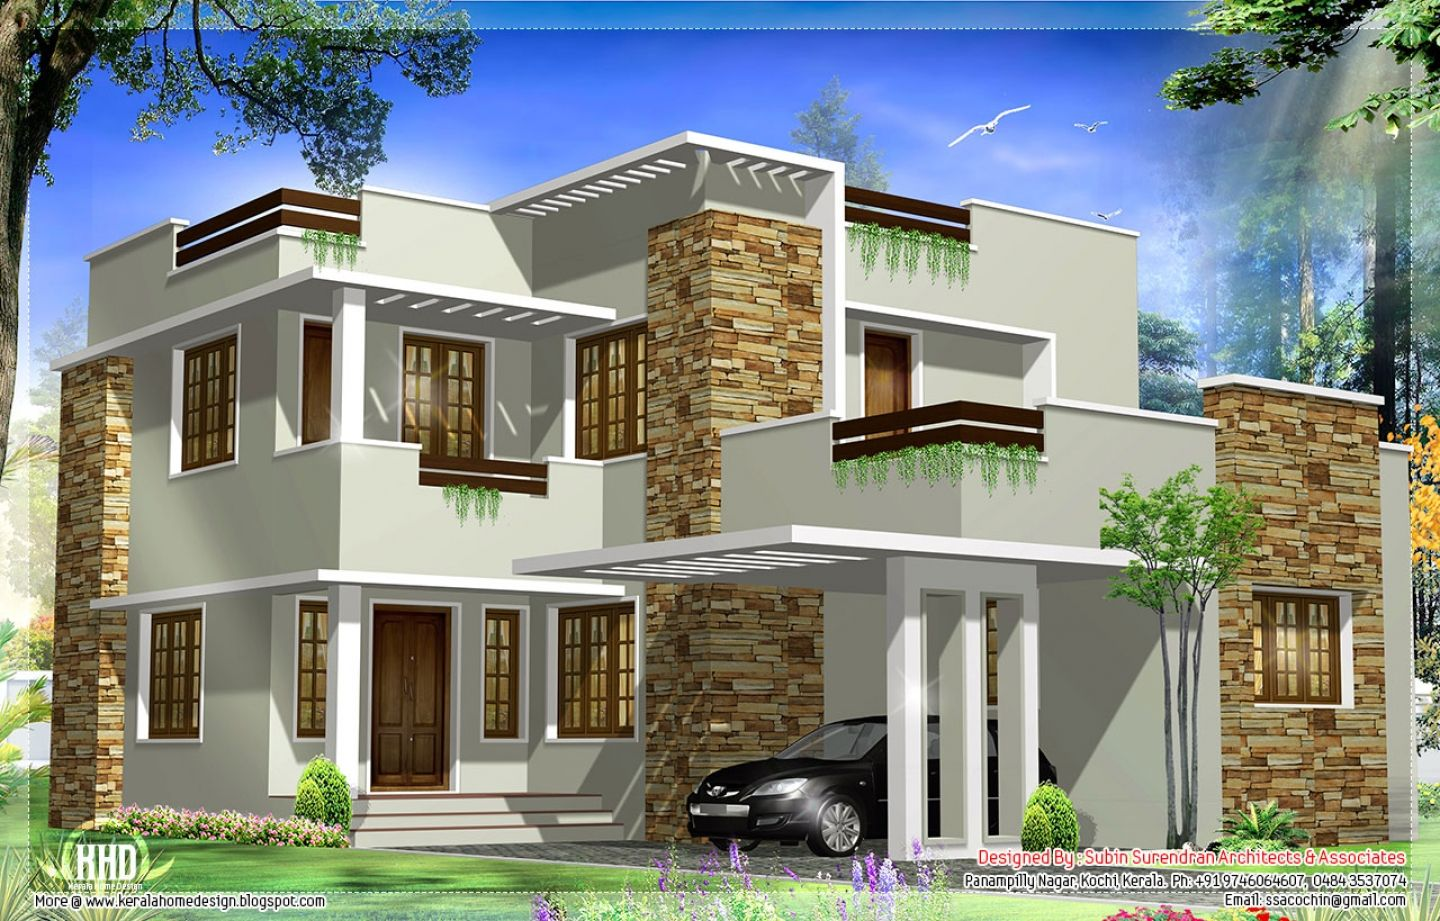 General   Square Feet Modern House Elevation Kerala Home Design    ResourcedirGeneral   Square Feet Modern House Elevation Kerala Home Design  . Home Elevation Designs. Home Design Ideas